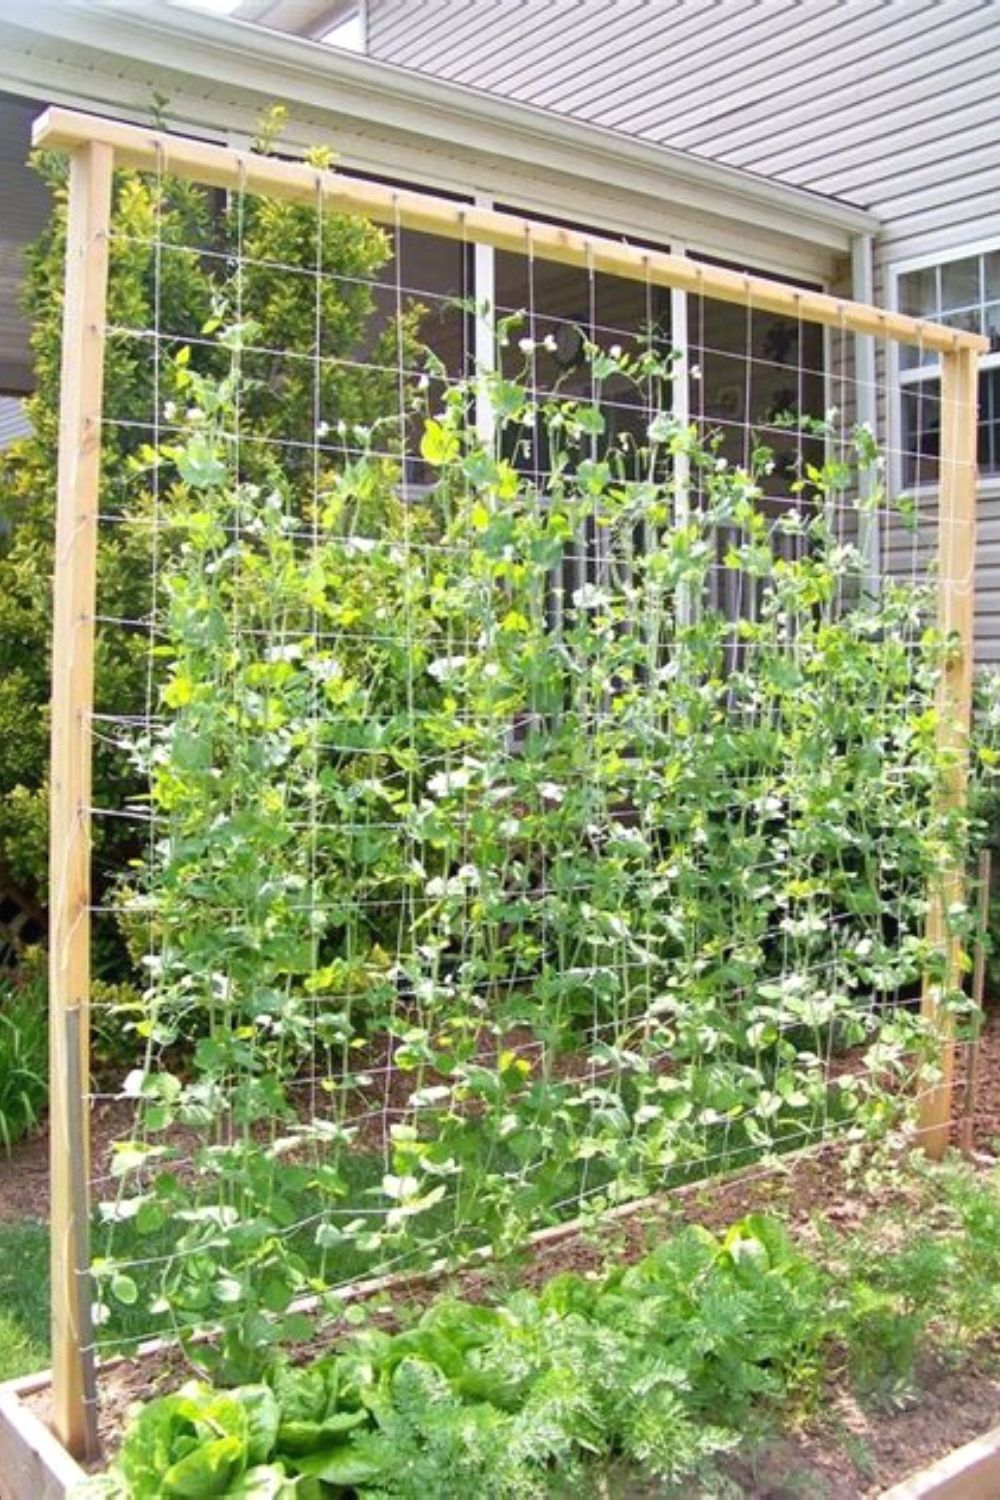 Creative Trellis Ideas To Add Beauty To Your Garden Pea Trellis Garden Trellis Garden Layout